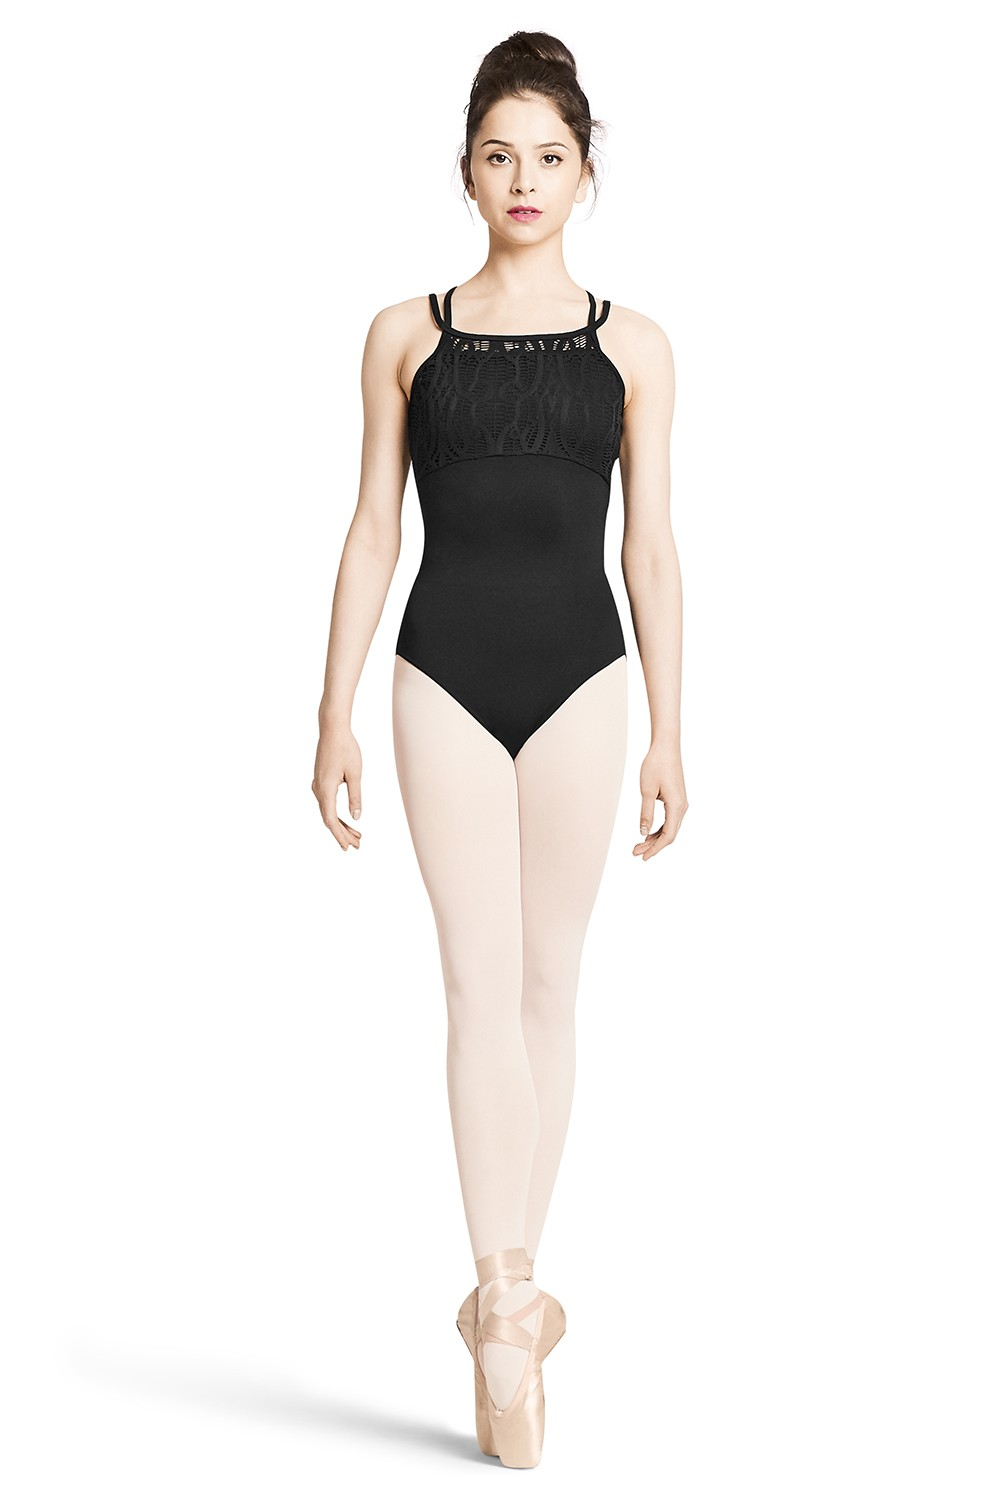 Body Con Spalline Sottili E Design Con Fascette Sul Retro Women's Dance Leotards